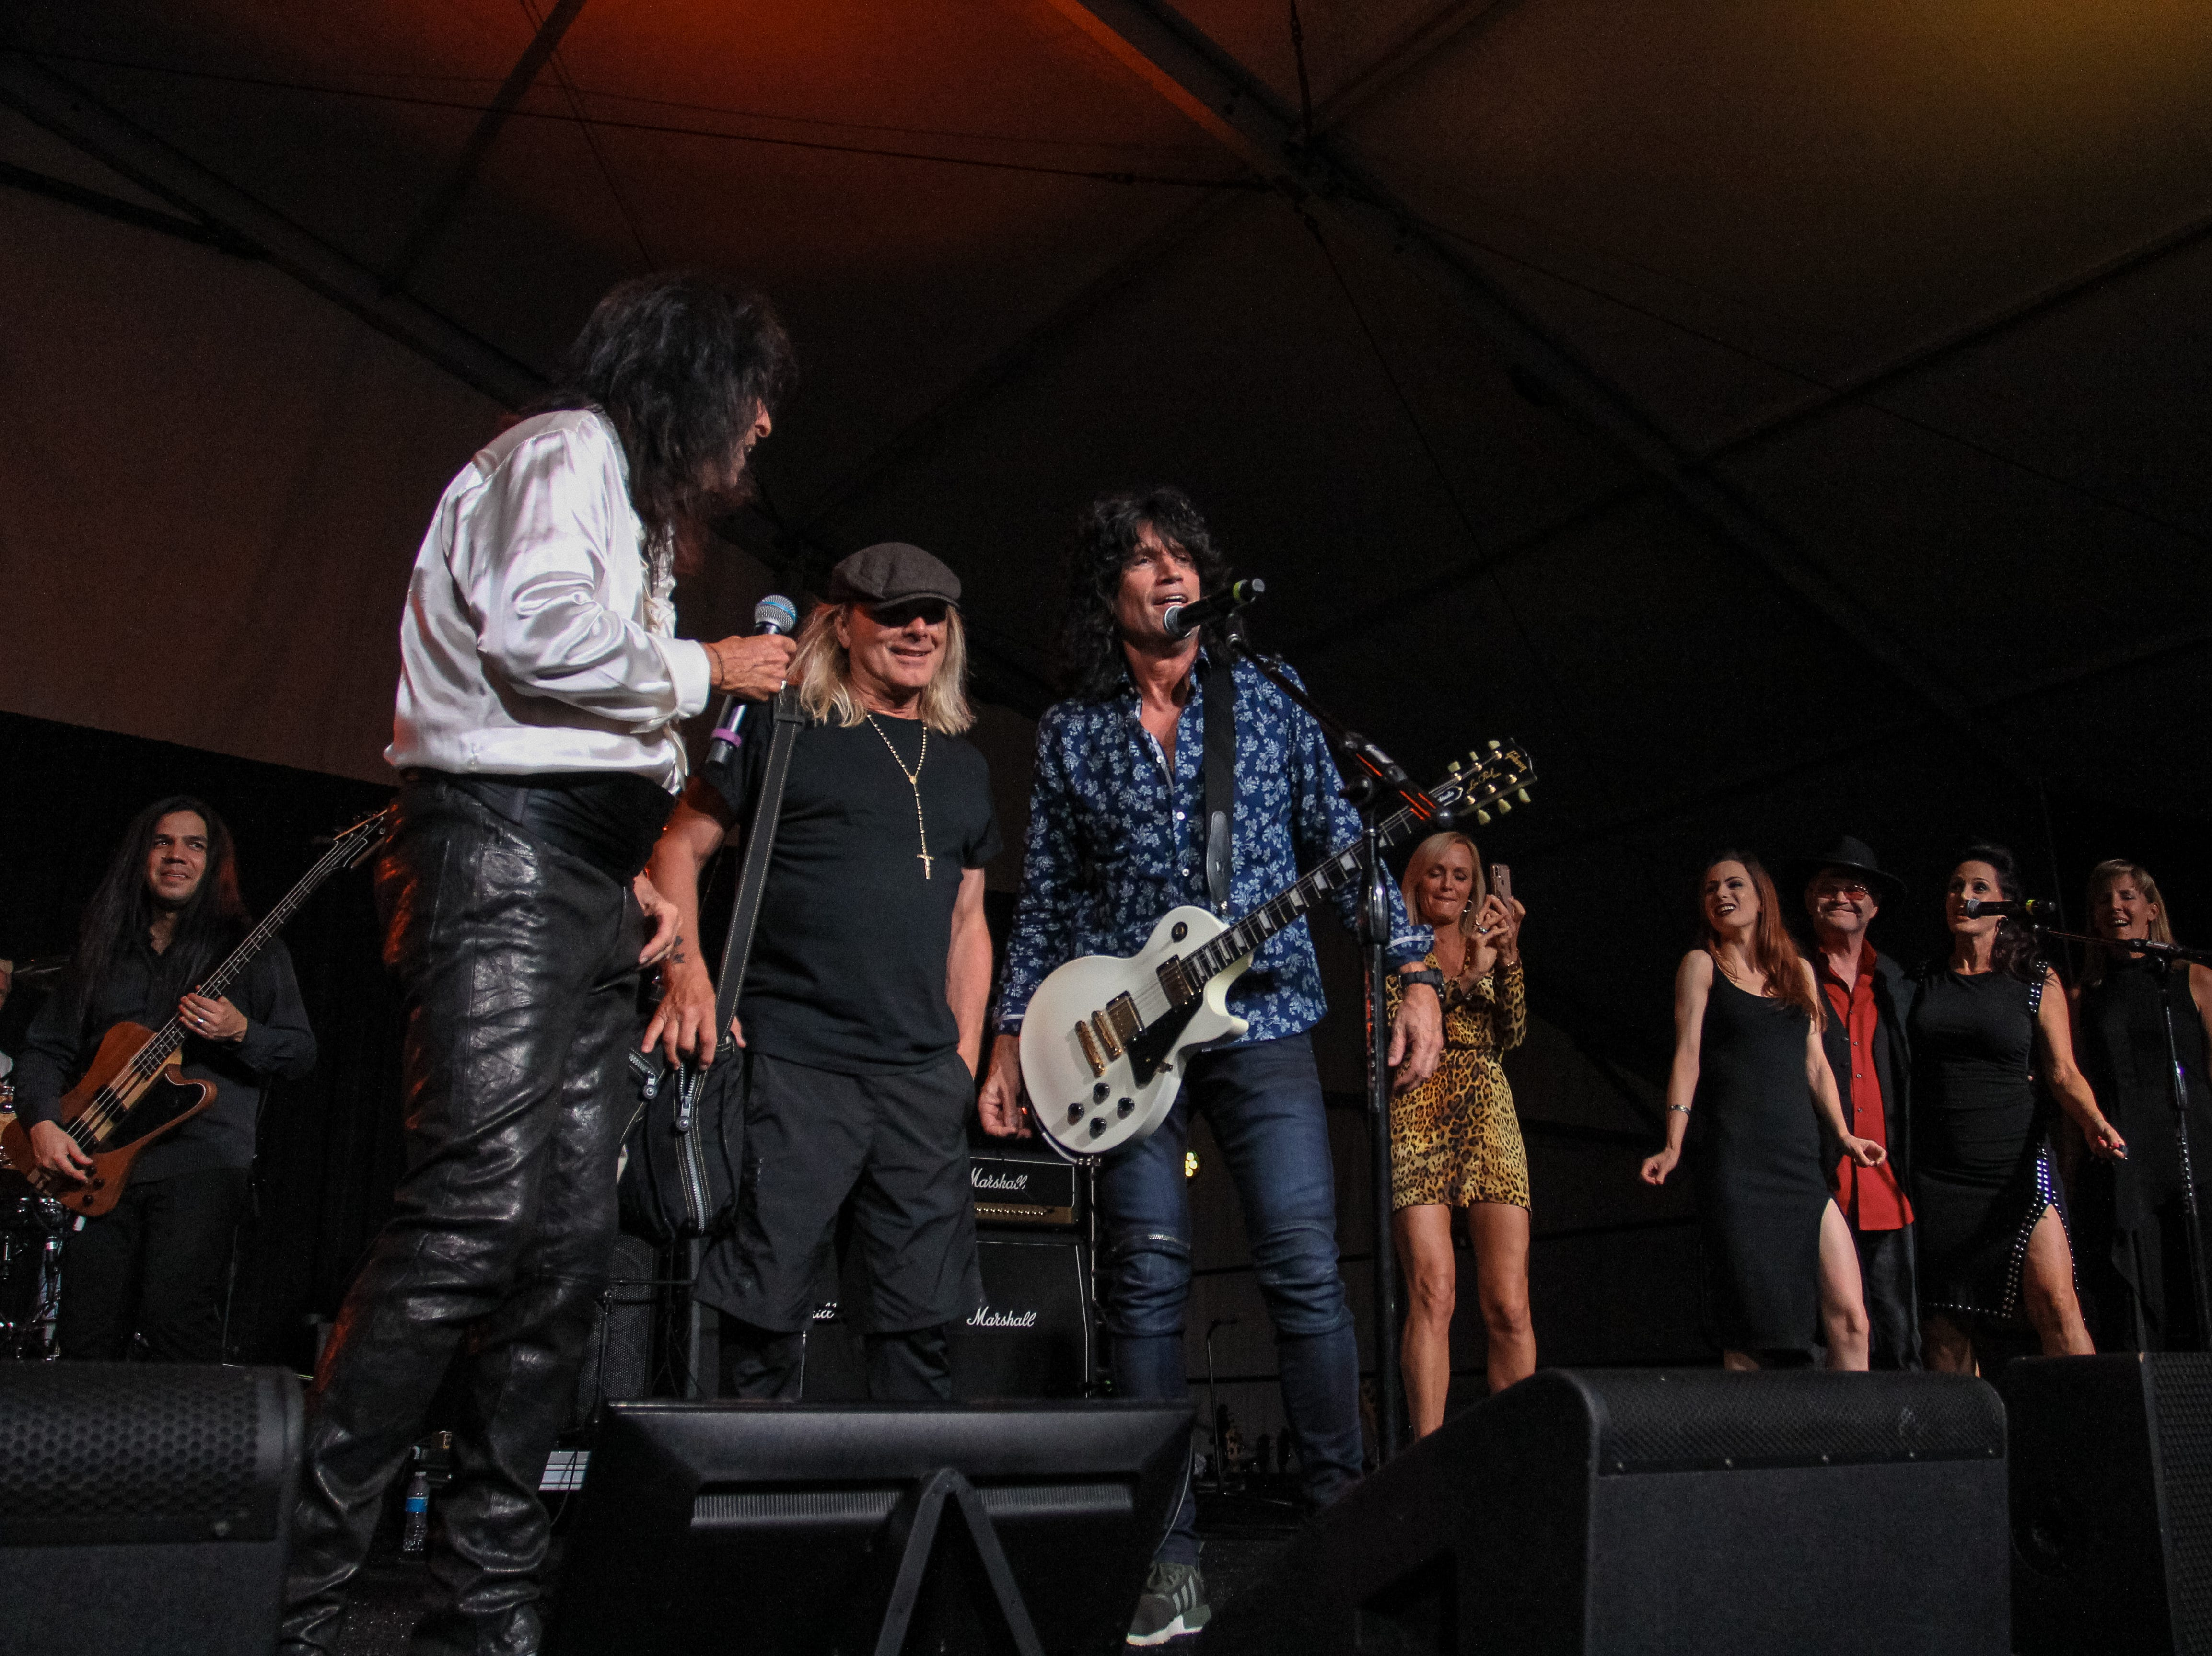 Alice Cooper, Tommy Thayer of Kiss, Micky Dolenz of The Monkees and Robin Zander of Cheap Trick perform at Alice Cooper's Rock & Roll Fundraising Bash at the Las Sendas Golf Club in Mesa on April 27, 2019.